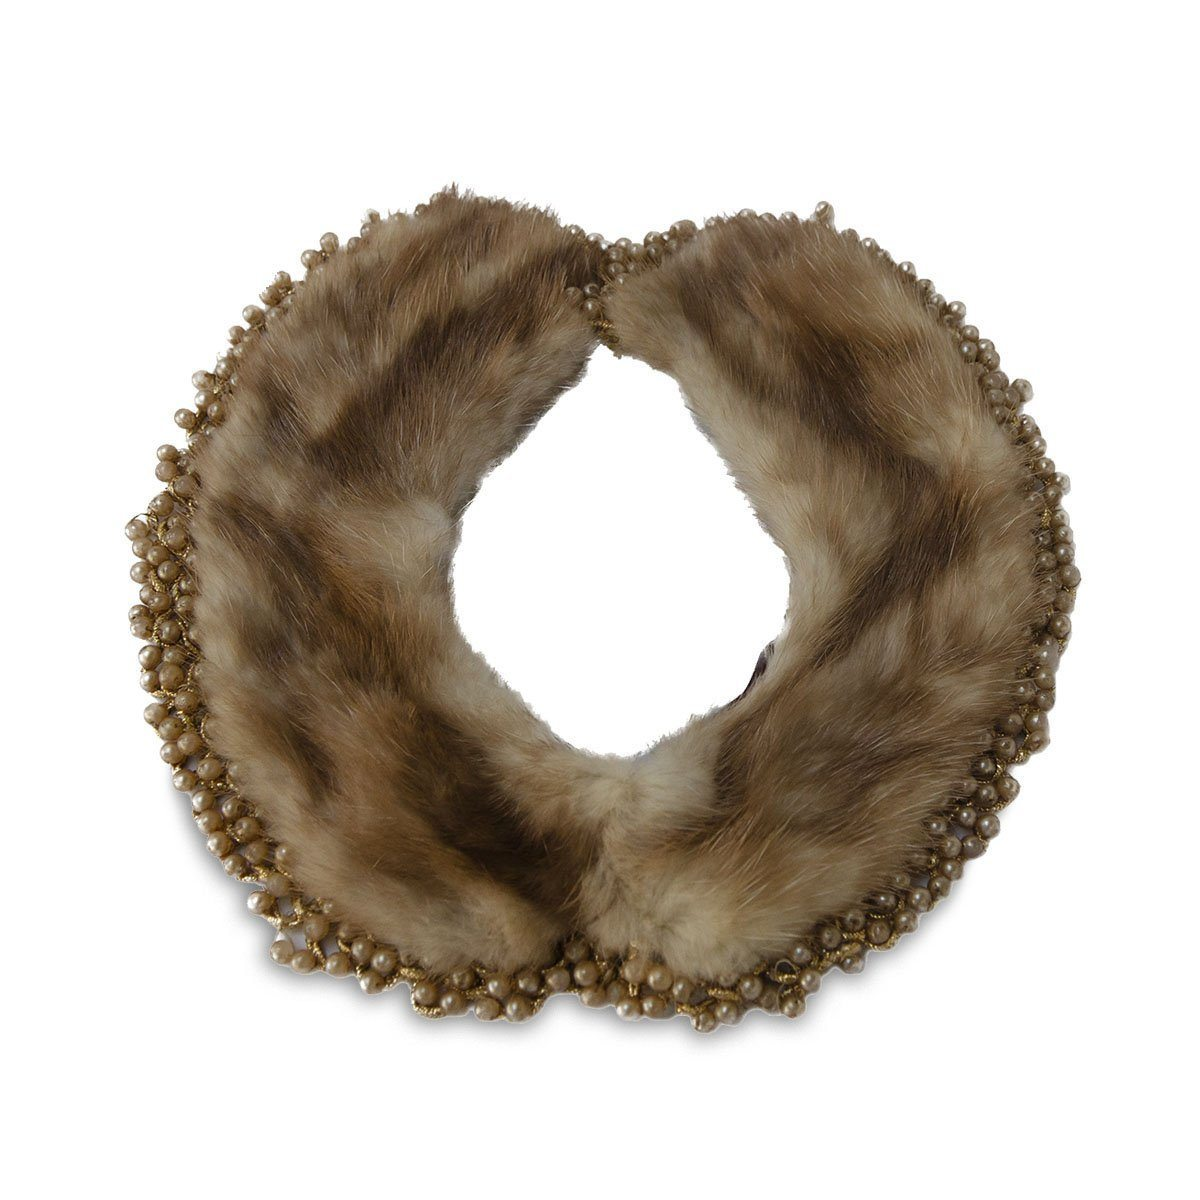 1940s Brown Mink Beaded Collar Necklace, 21″